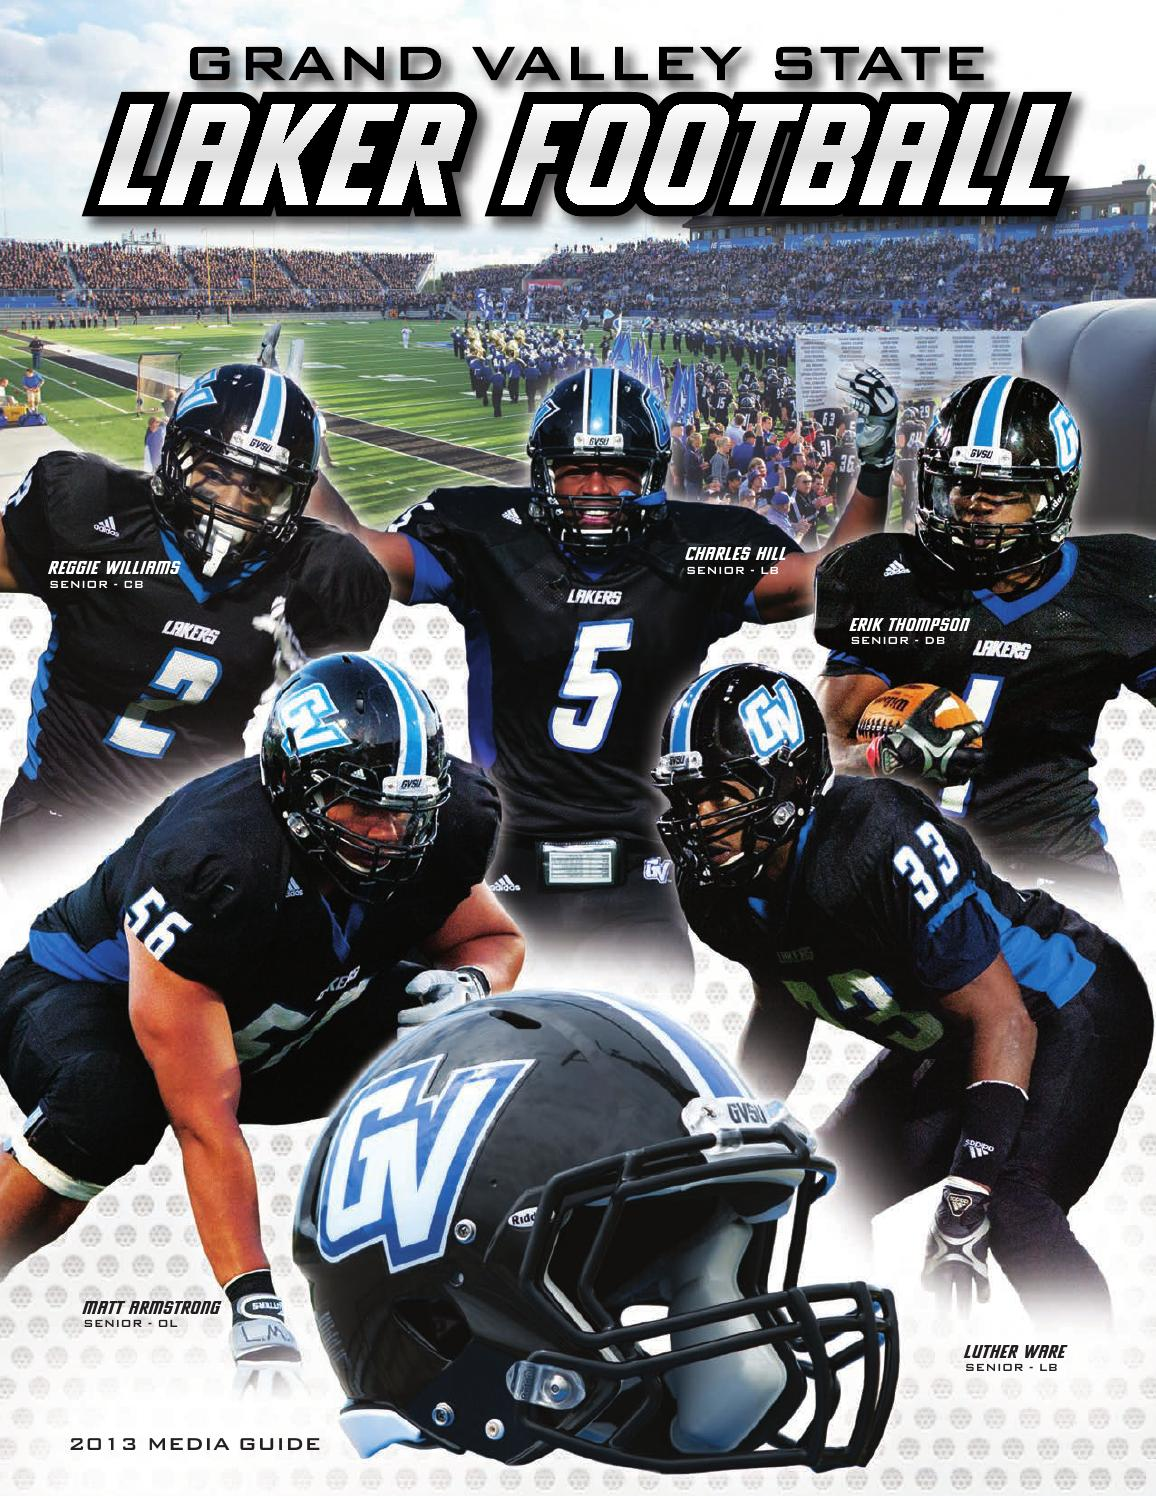 2013 Football Media Guide by Grand Valley State Lakers - issuu ca9fe5c5bc24